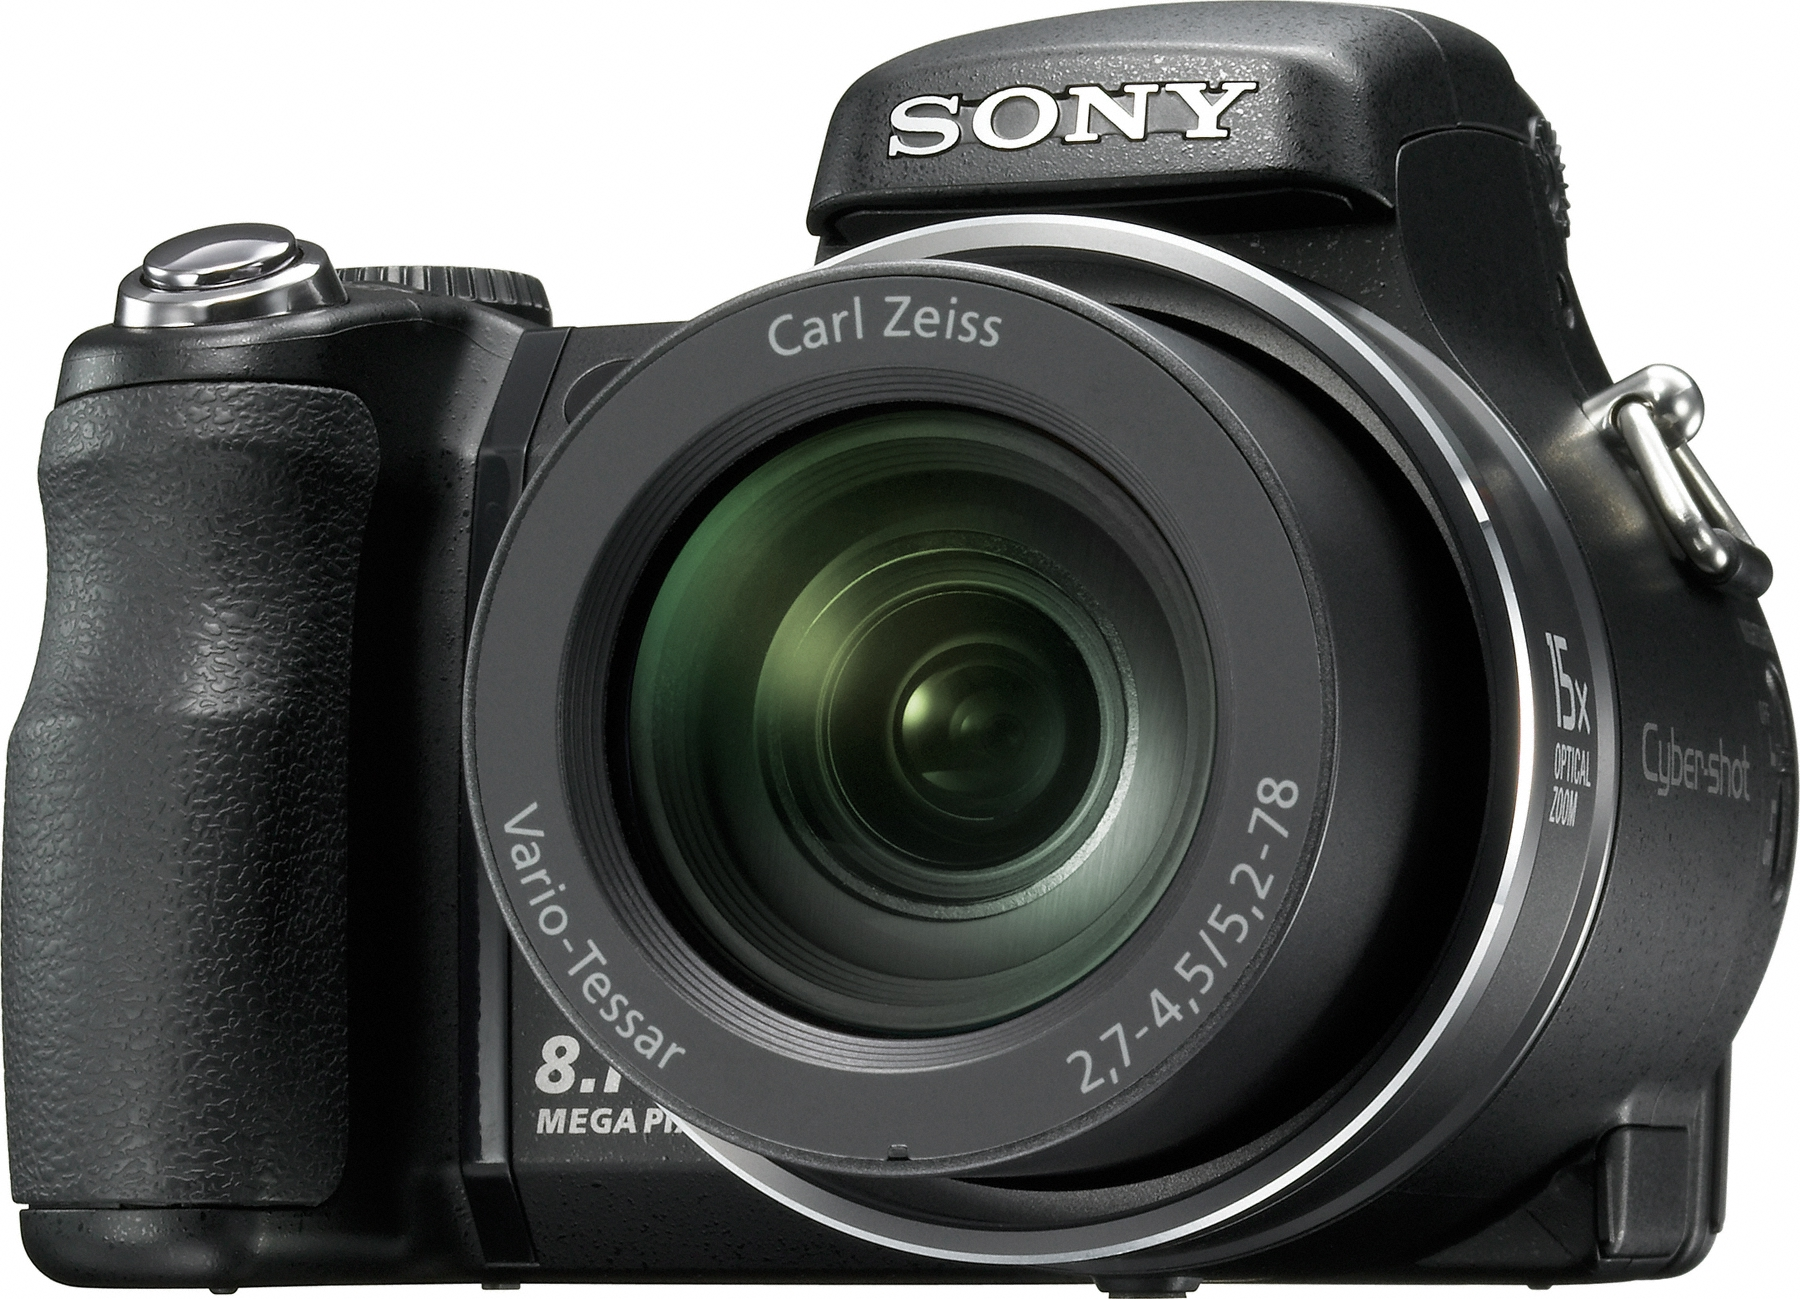 sony cybershot dsc h9 and dsc h7 digital camera review digital rh photoaxe com sony camera dsc-h7 manual sony cyber-shot dsc-h7 user manual